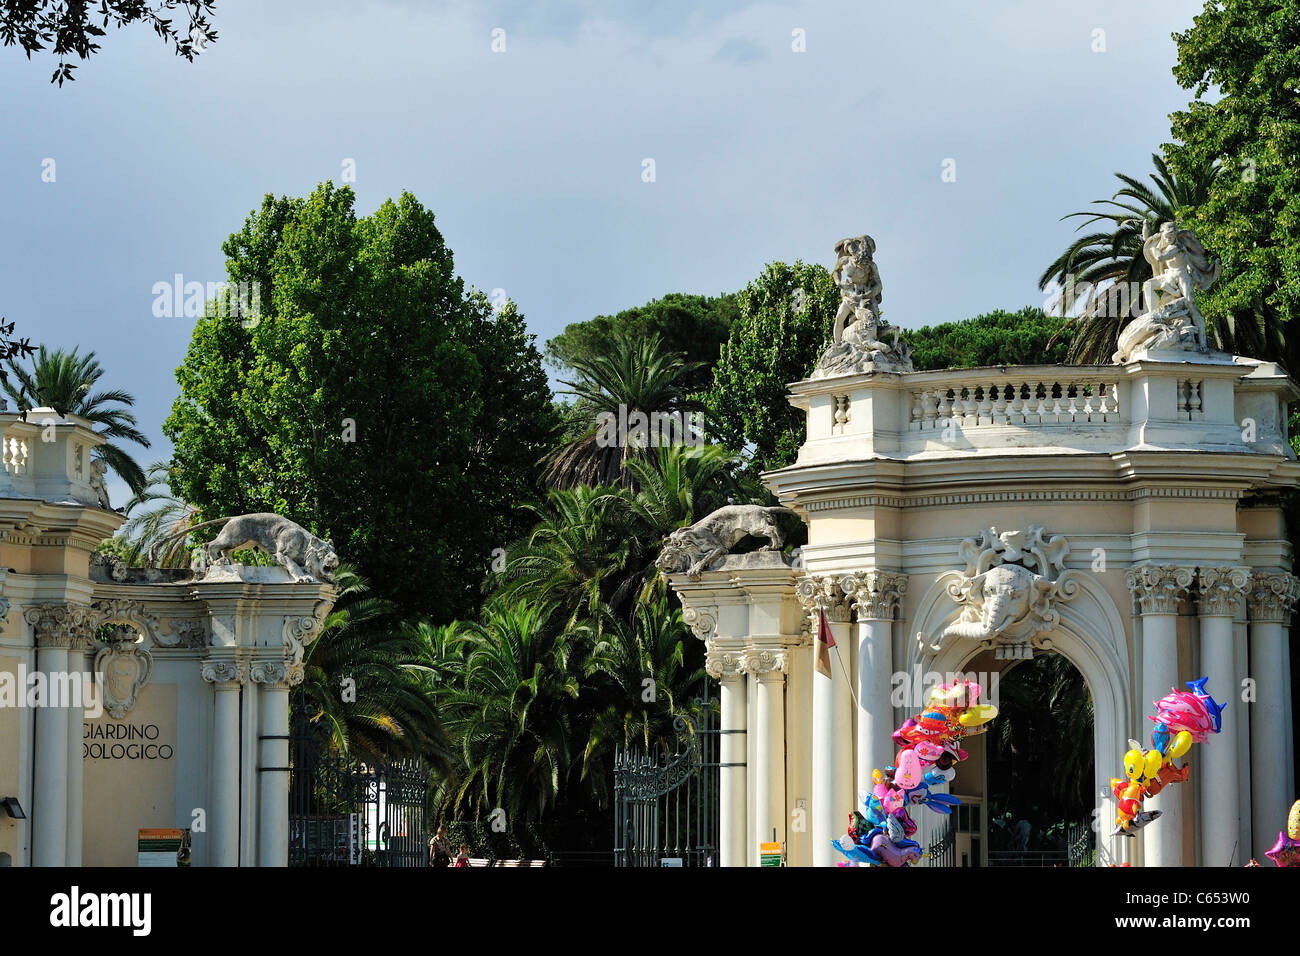 Rome. Italy. Entrance to the Bioparco Zoo in Villa